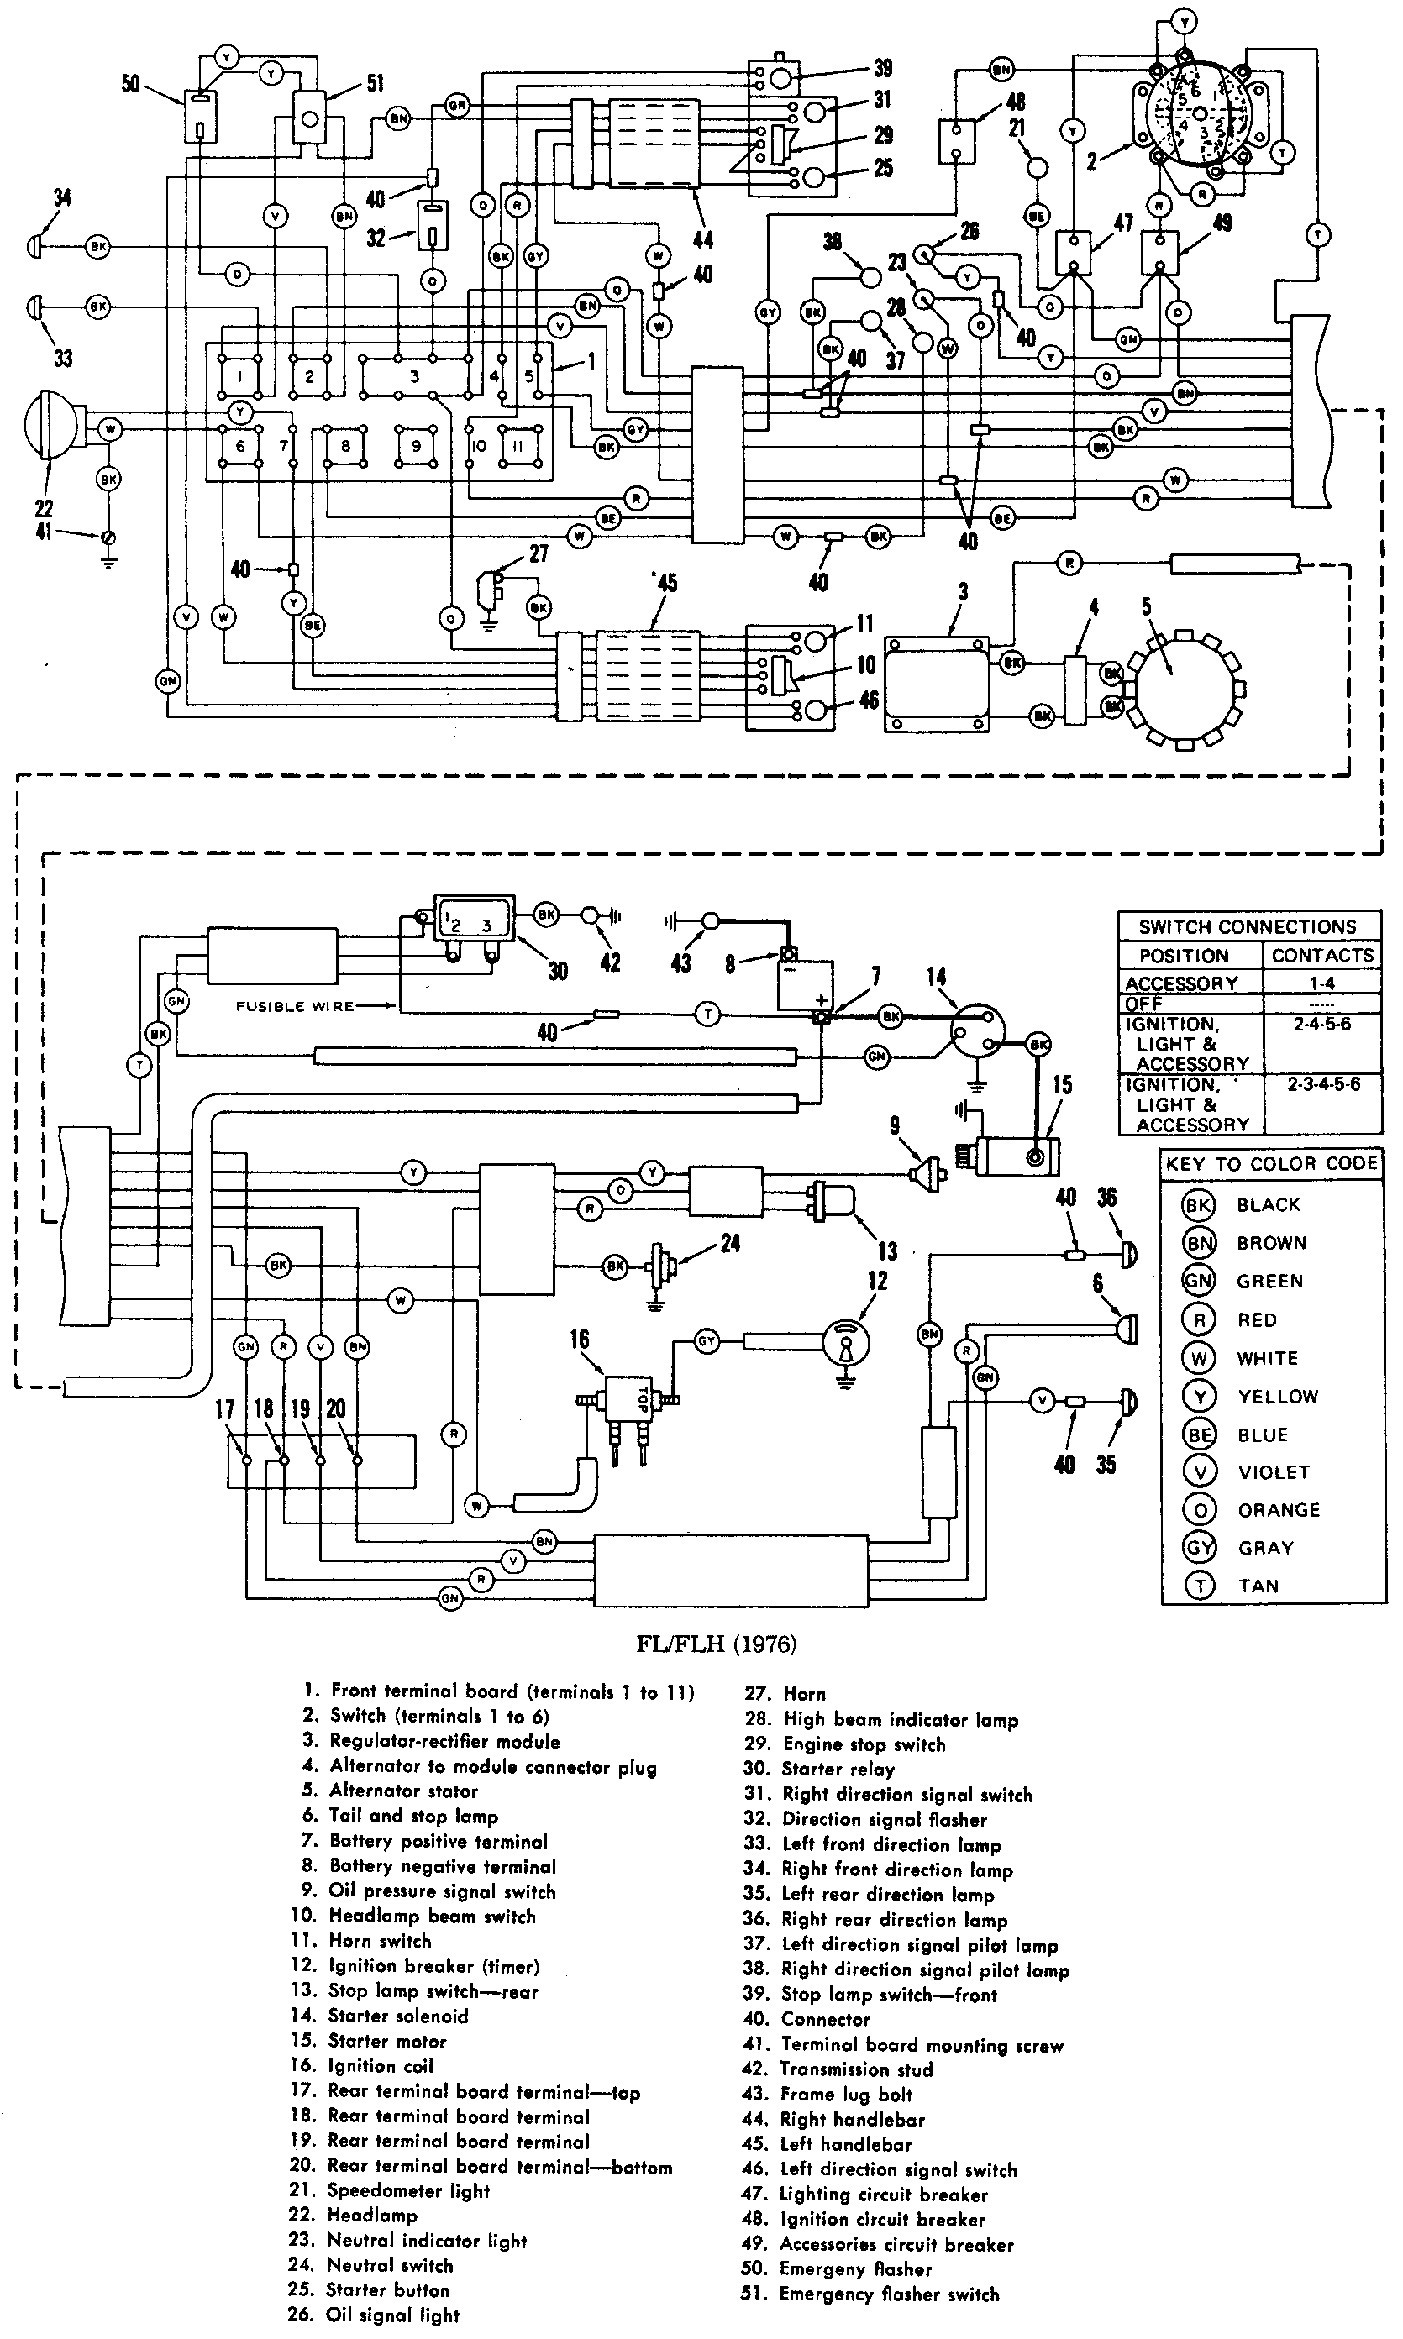 1985 Fxr Wiring Diagram Library Williams Thermostat P322016 Wall Furnace 1993 Harley Davidson Somurich Com 1976